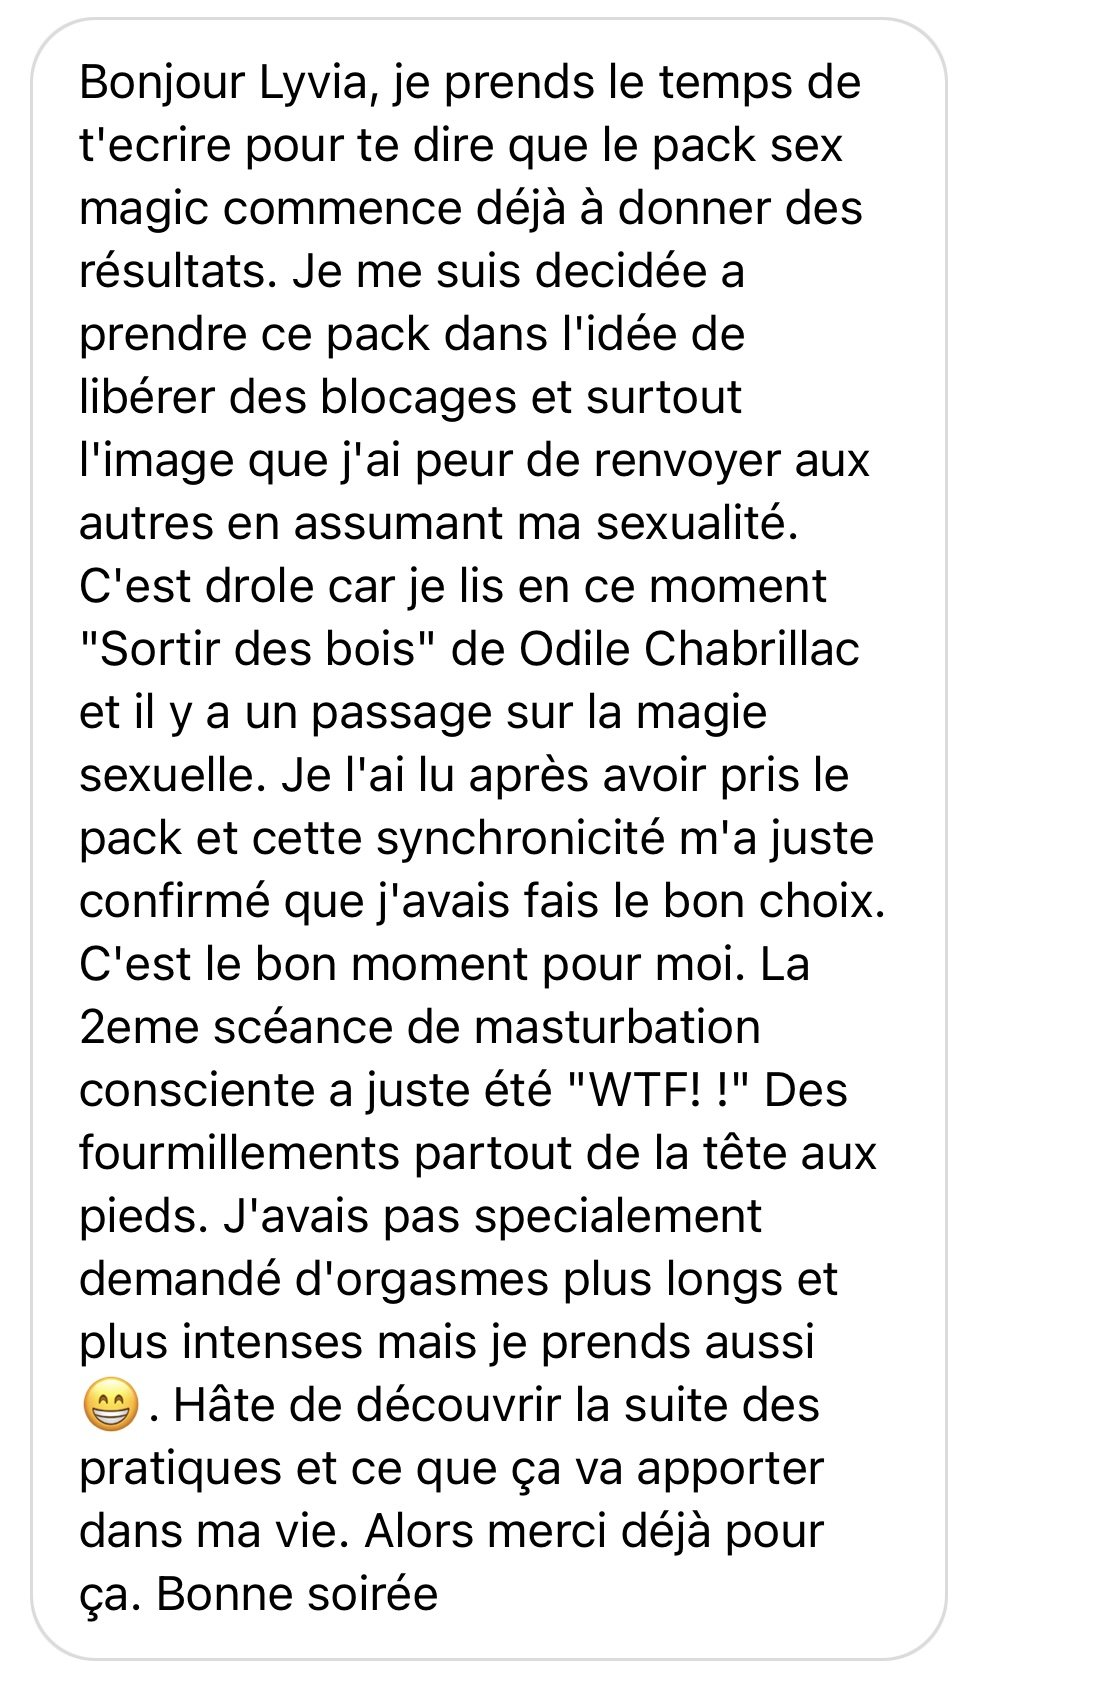 Sex Magic Témoignage 3